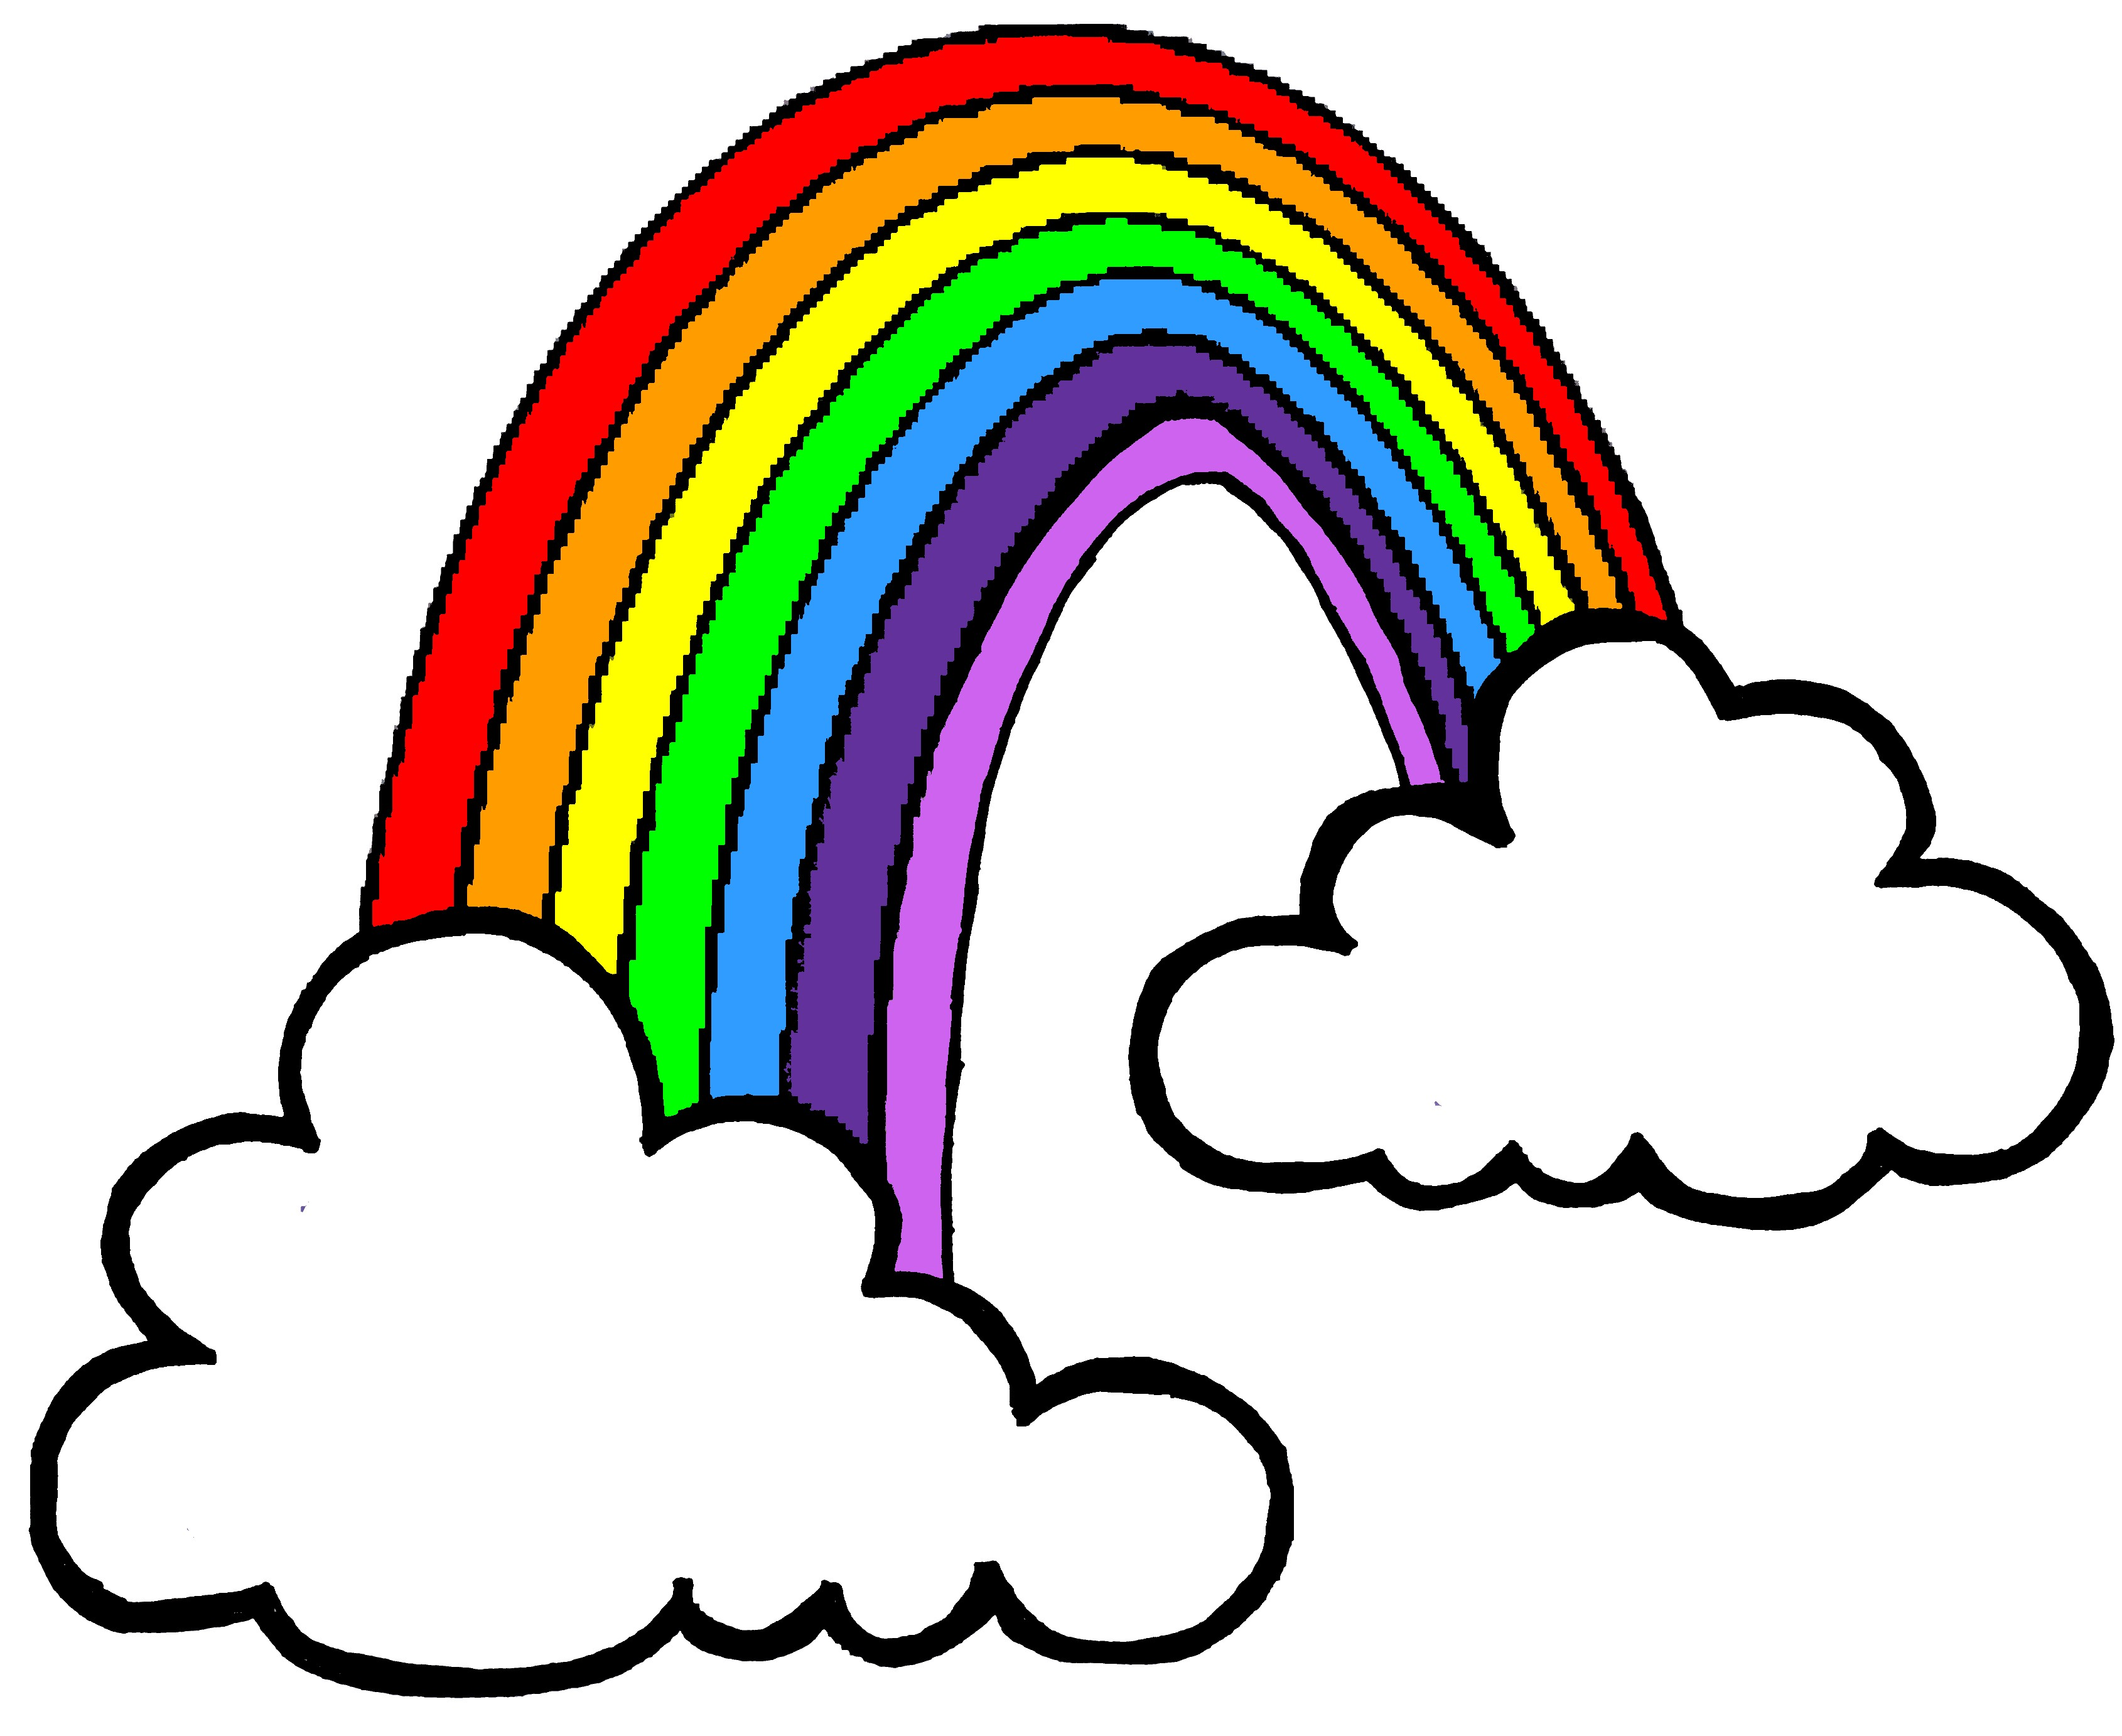 Rainbow clipart #3, Download drawings